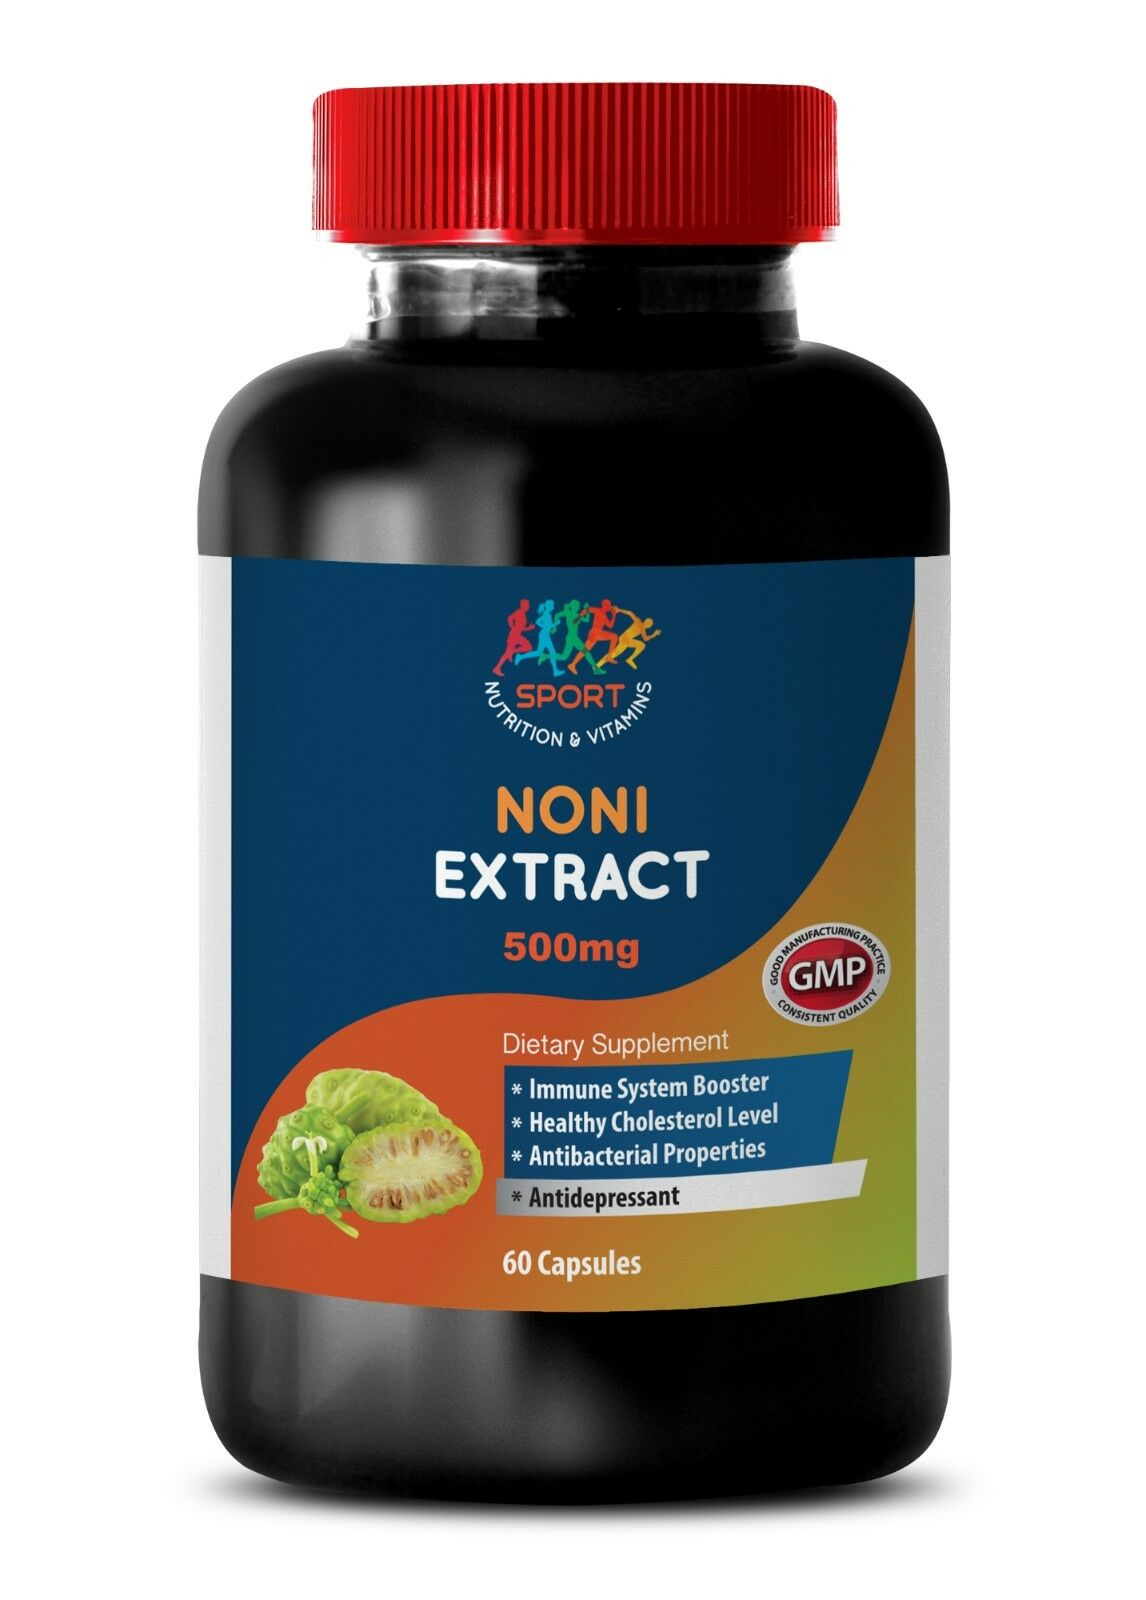 Energy Booster For Men - Noni Extract 500mg 1b - Noni Fruit Extract